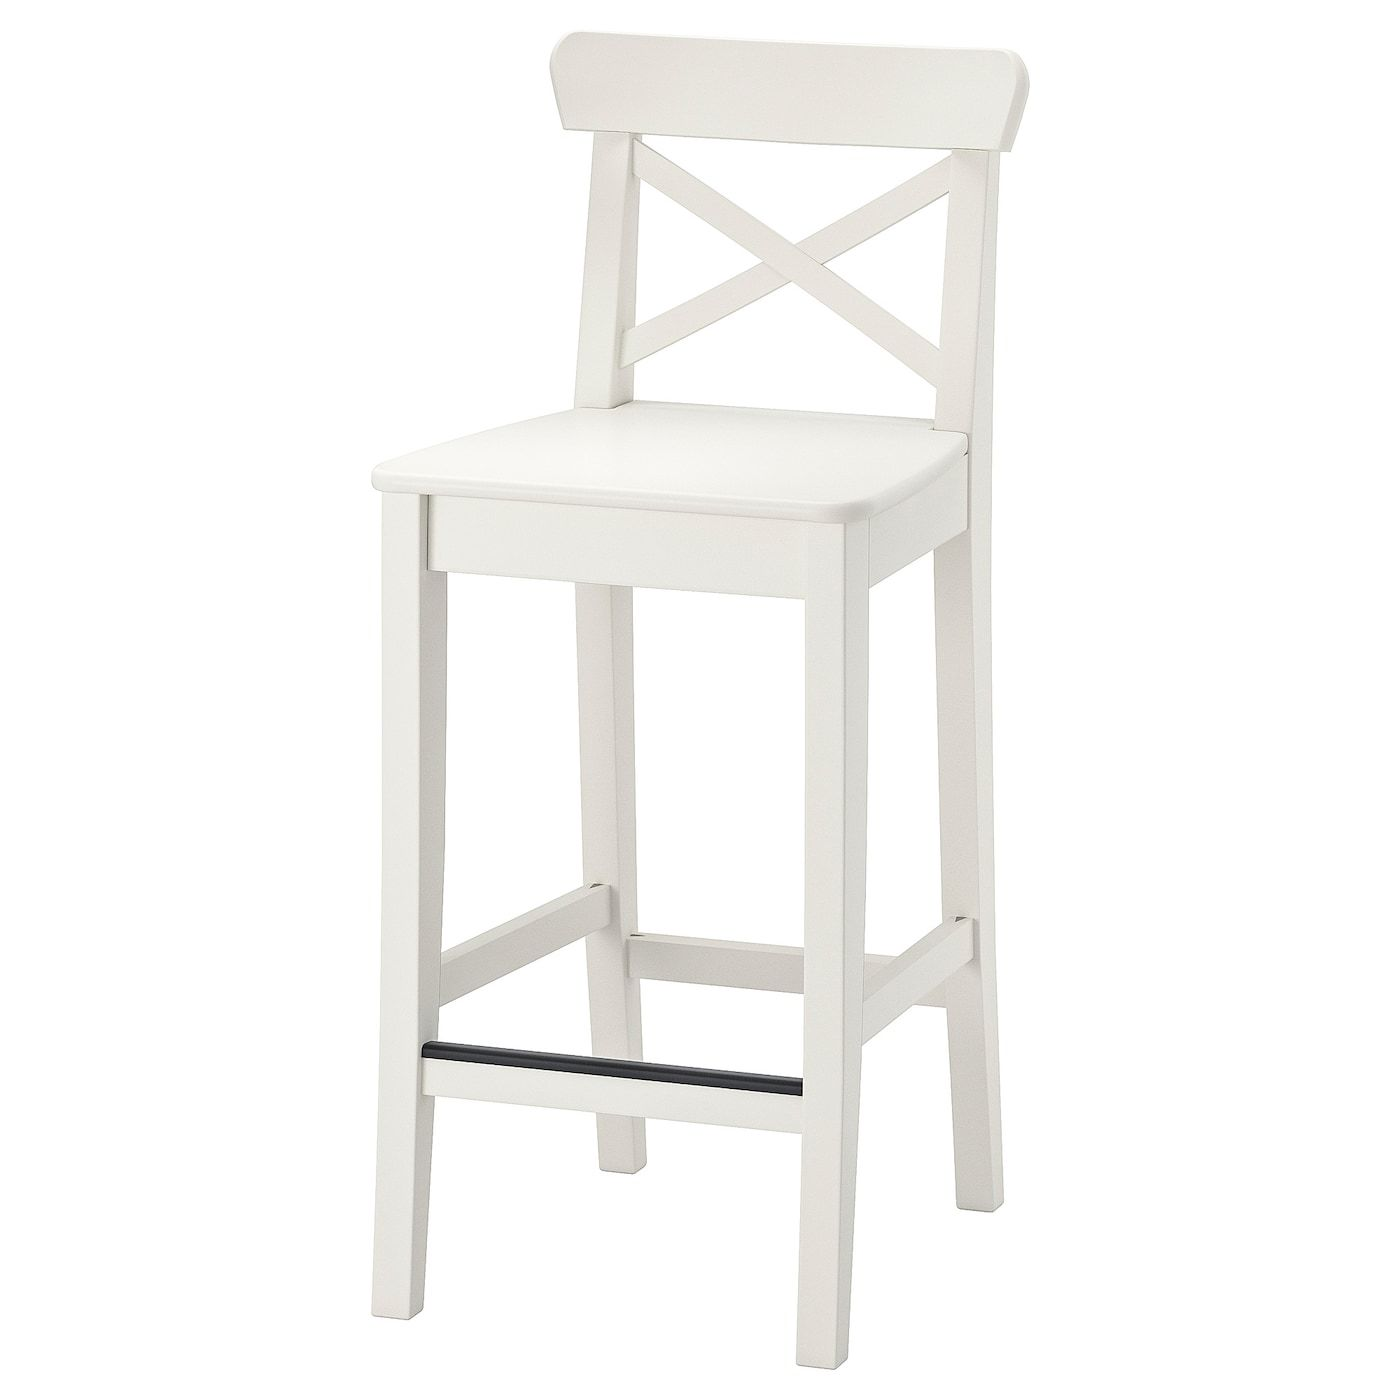 Ikea Ingolf White Bar Stool With Backrest In 2020 Bar Stools Ikea Bar White Bar Stools